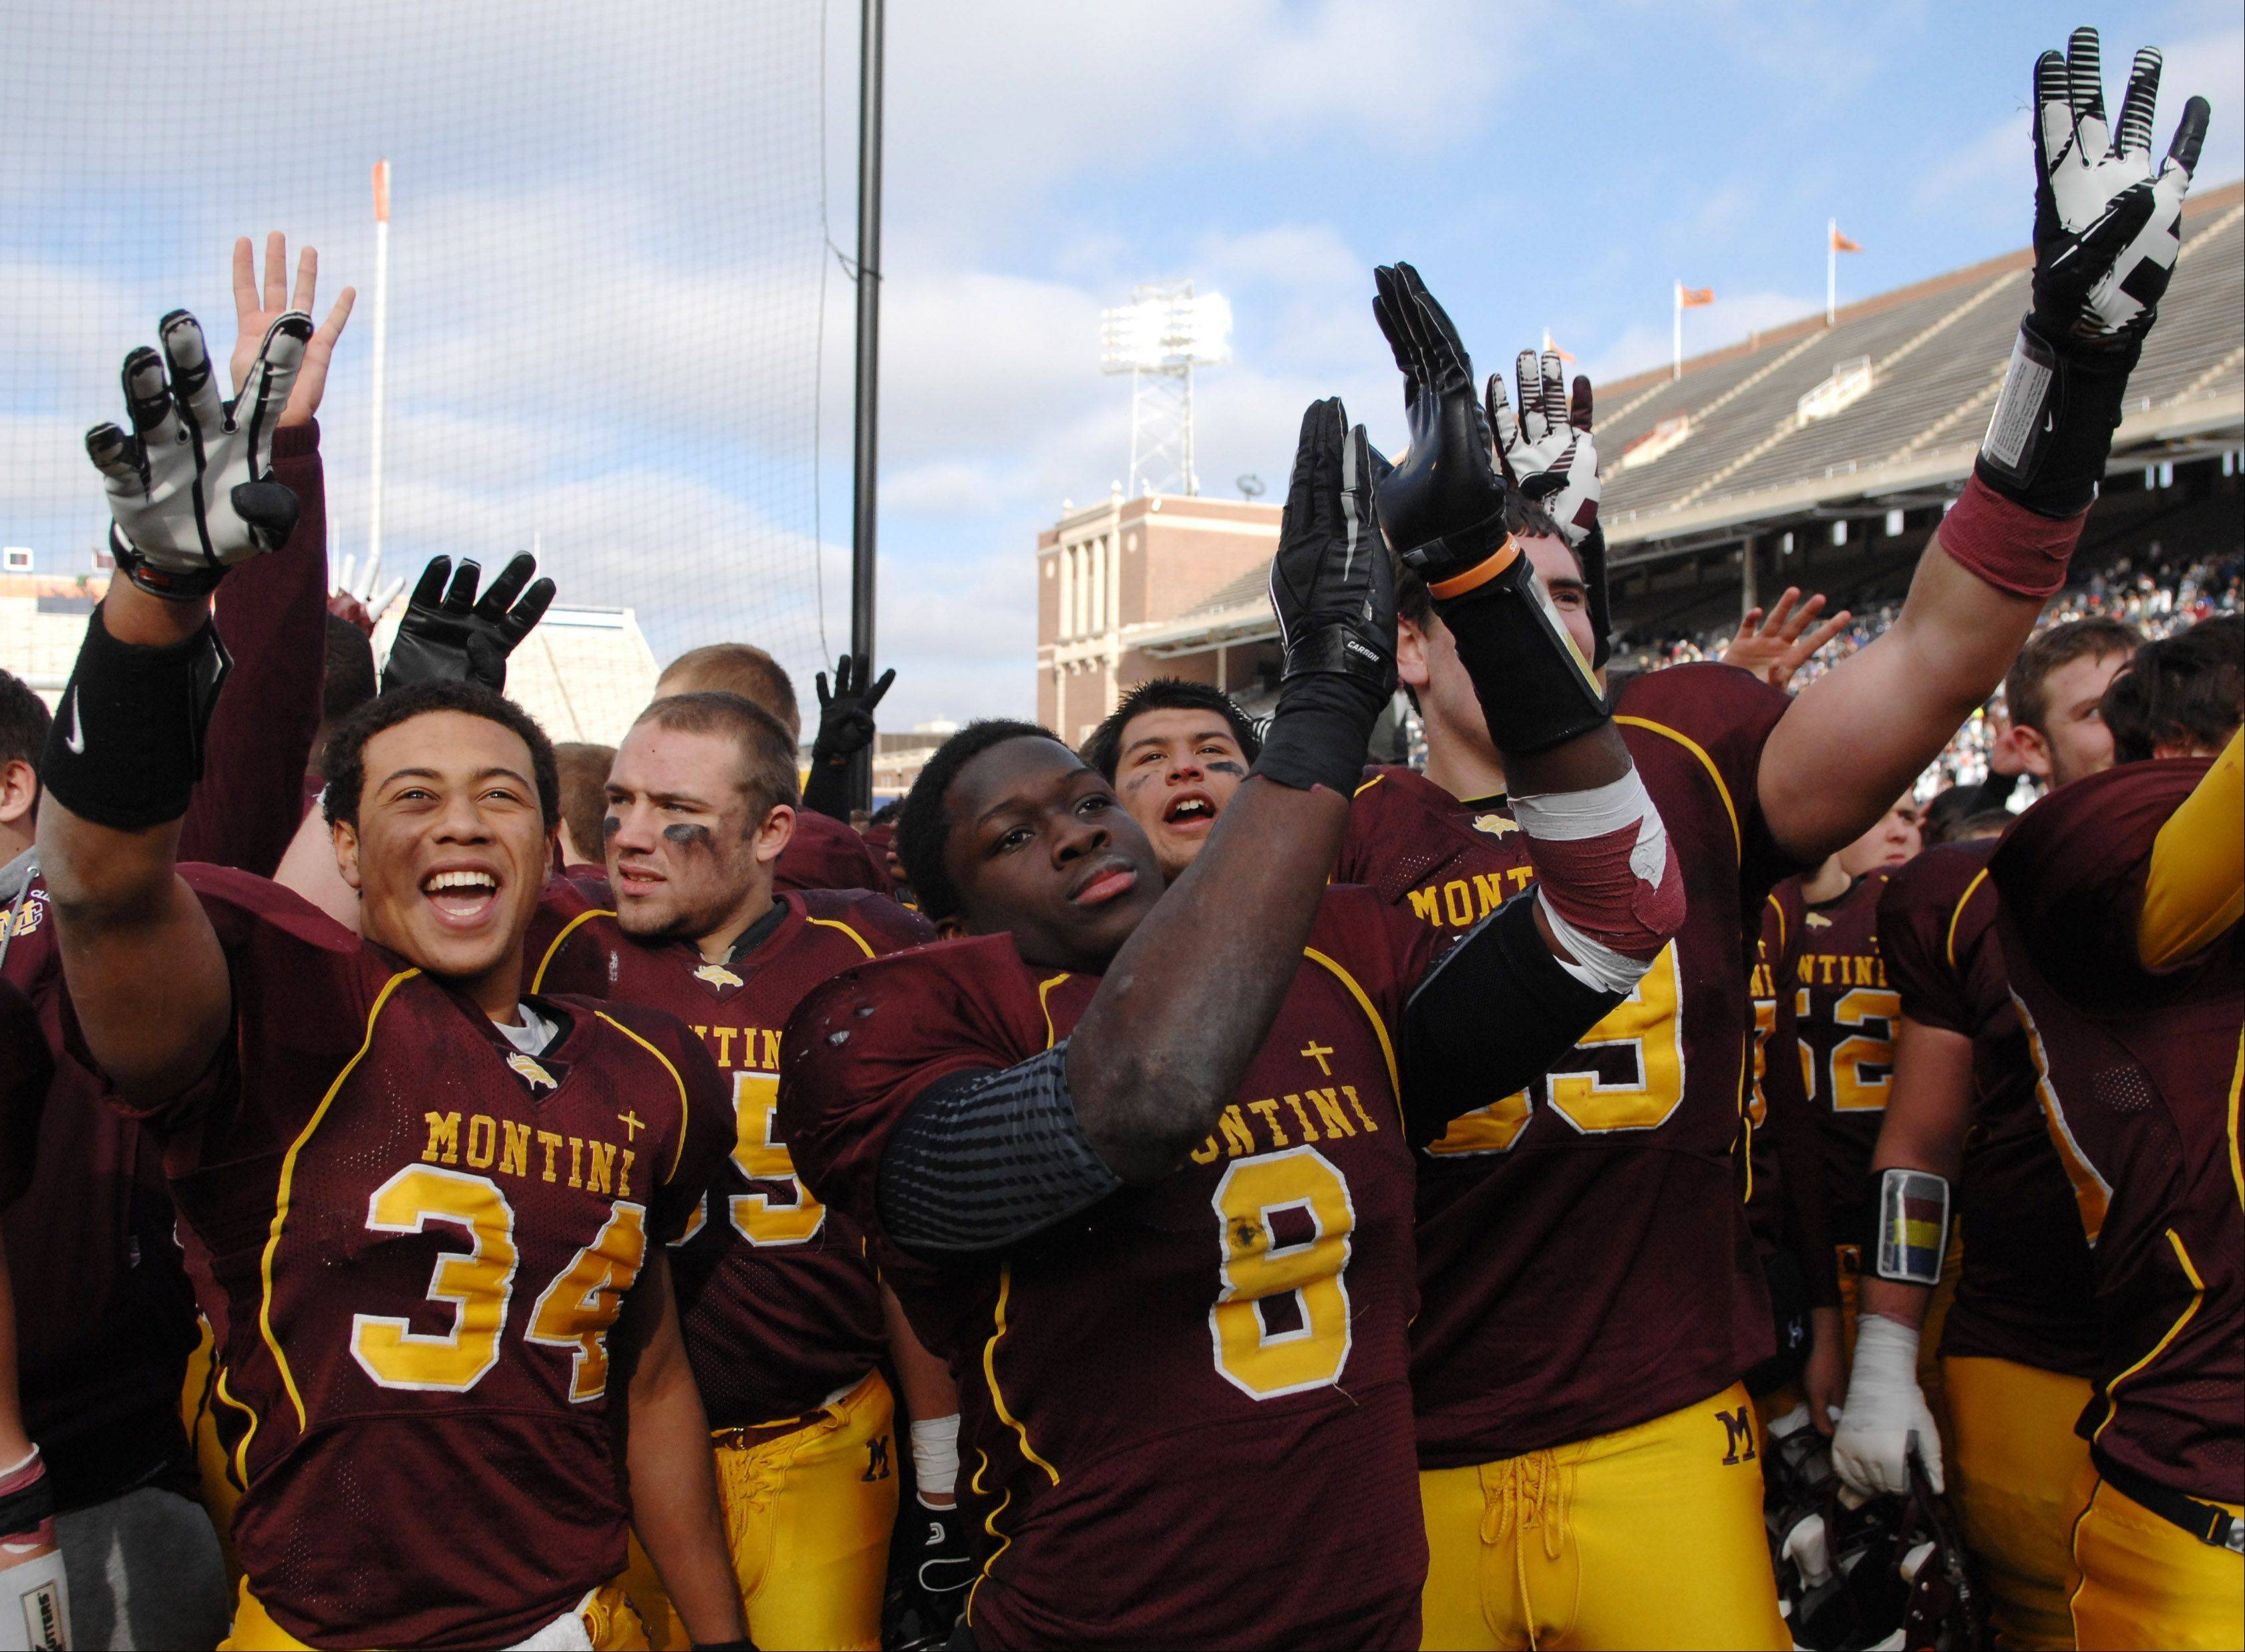 Images: Montini vs. Morris, 5A football championship